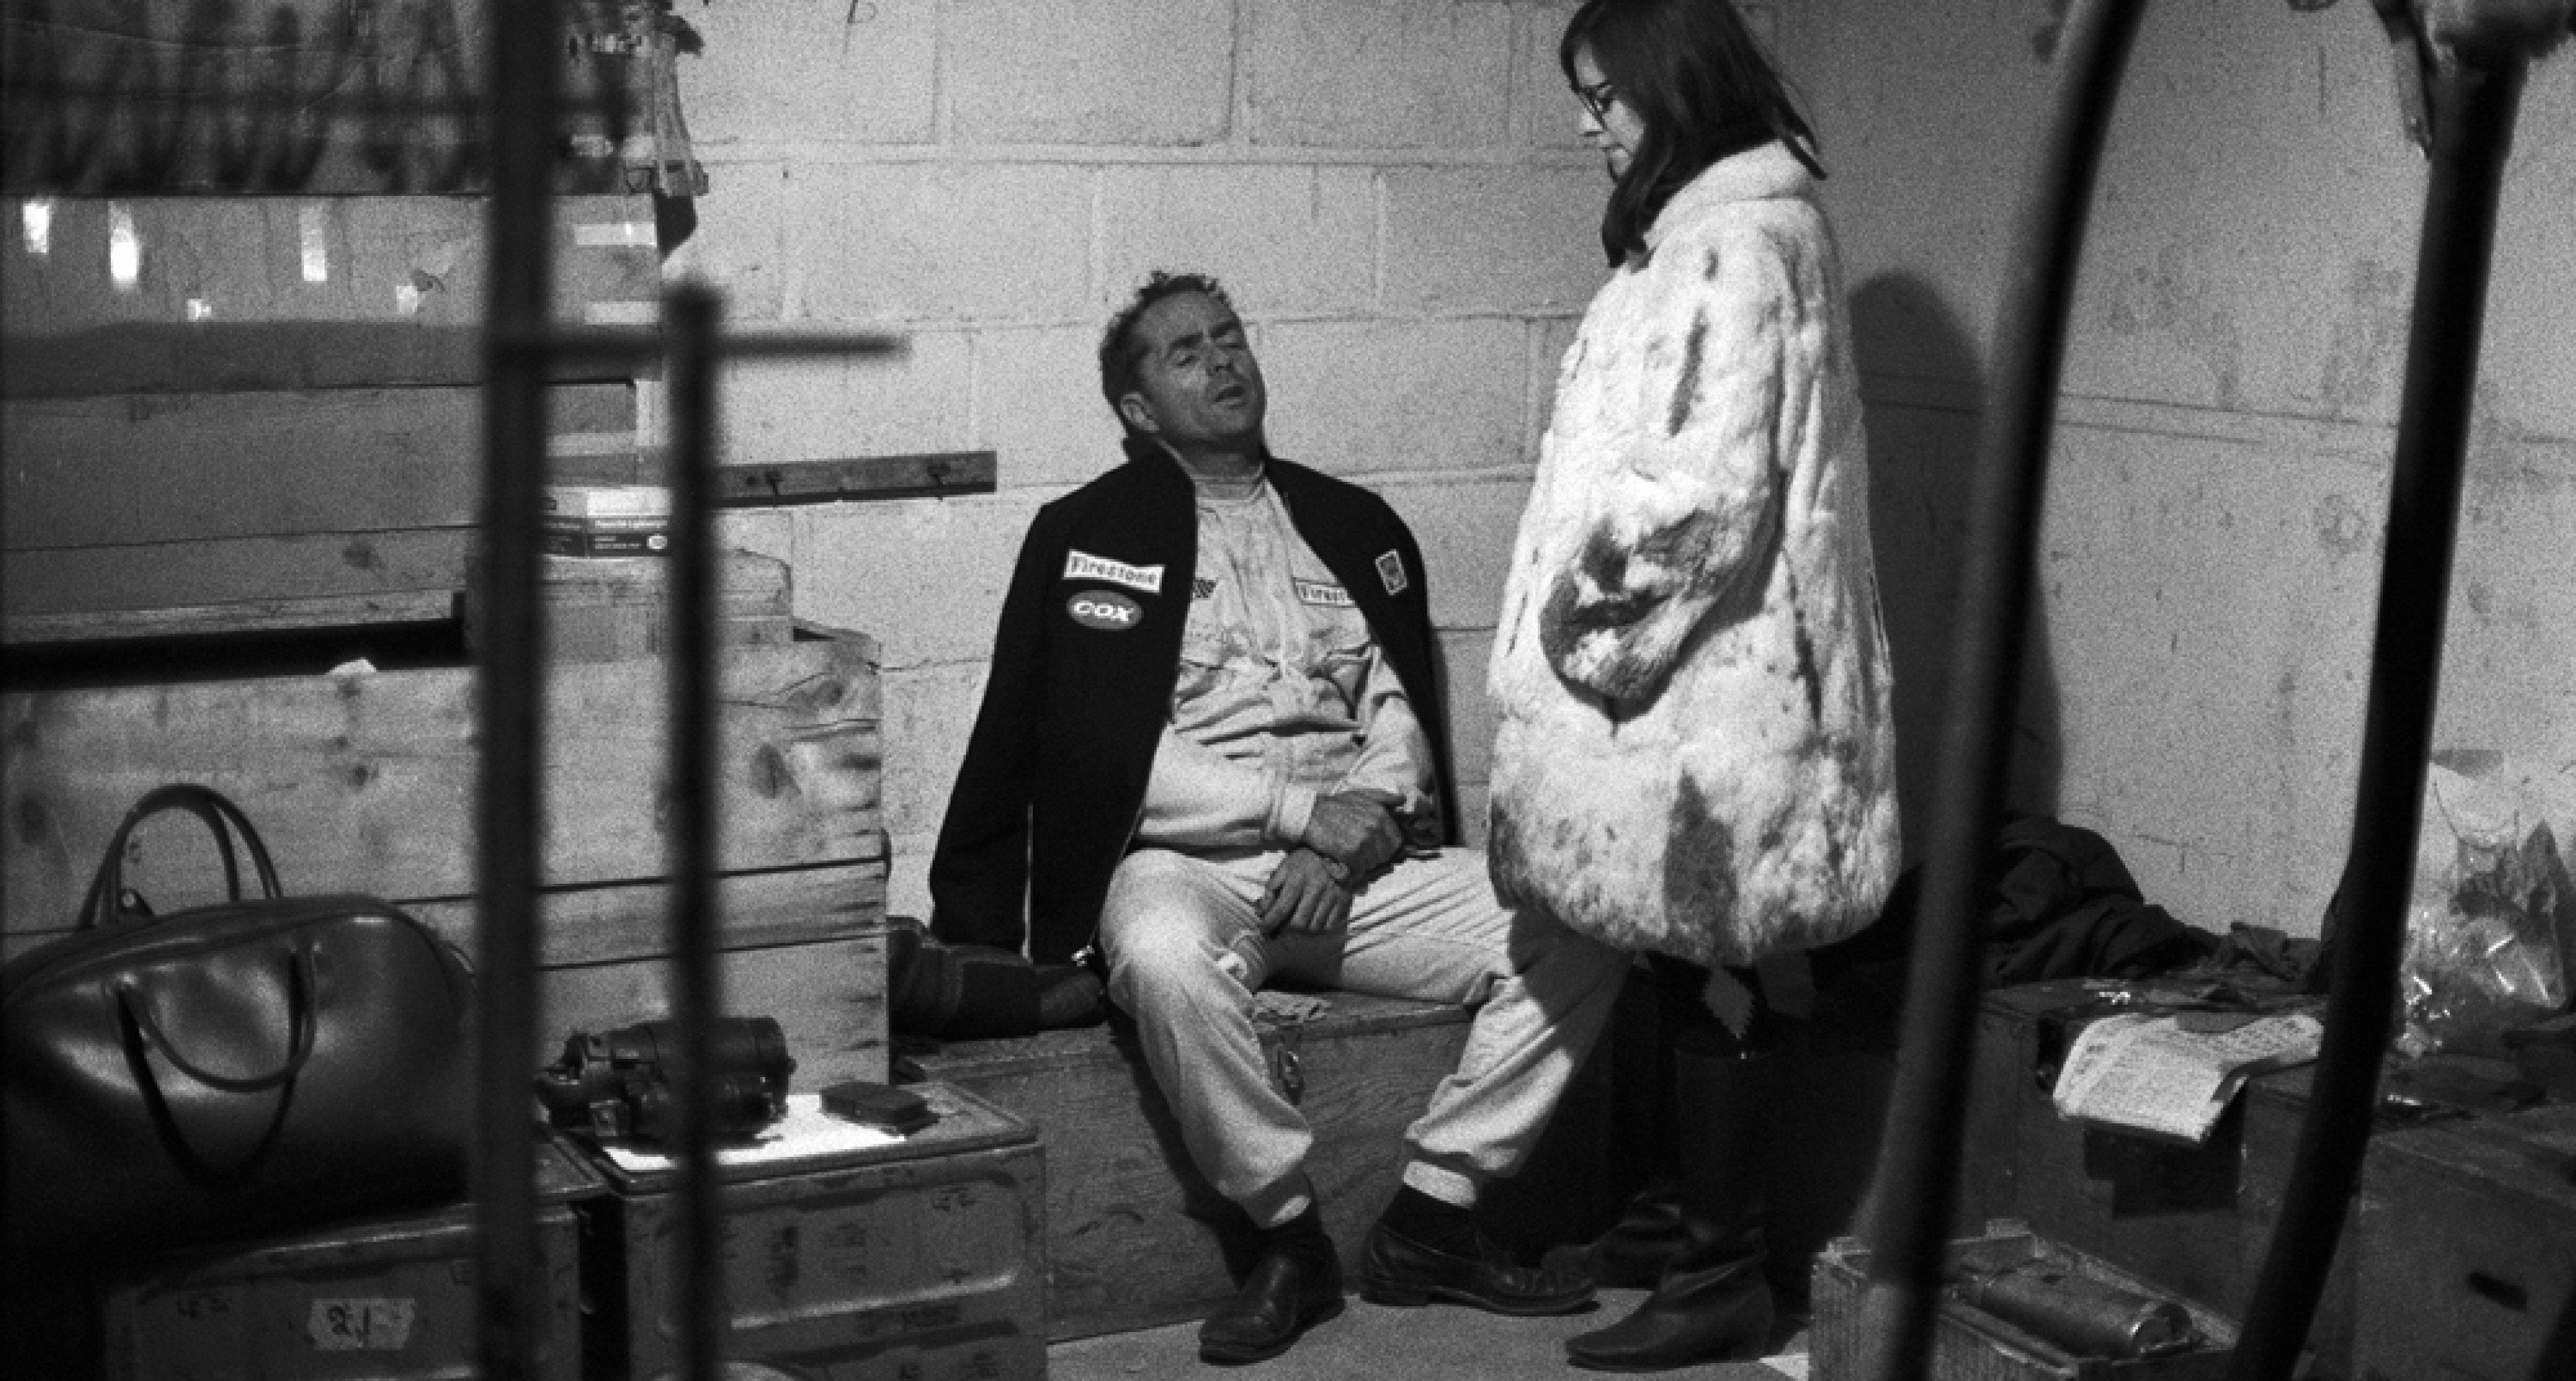 An exhausted Phil Hill relaxes in pits during the long race night of the 24h Le Mans 1967.